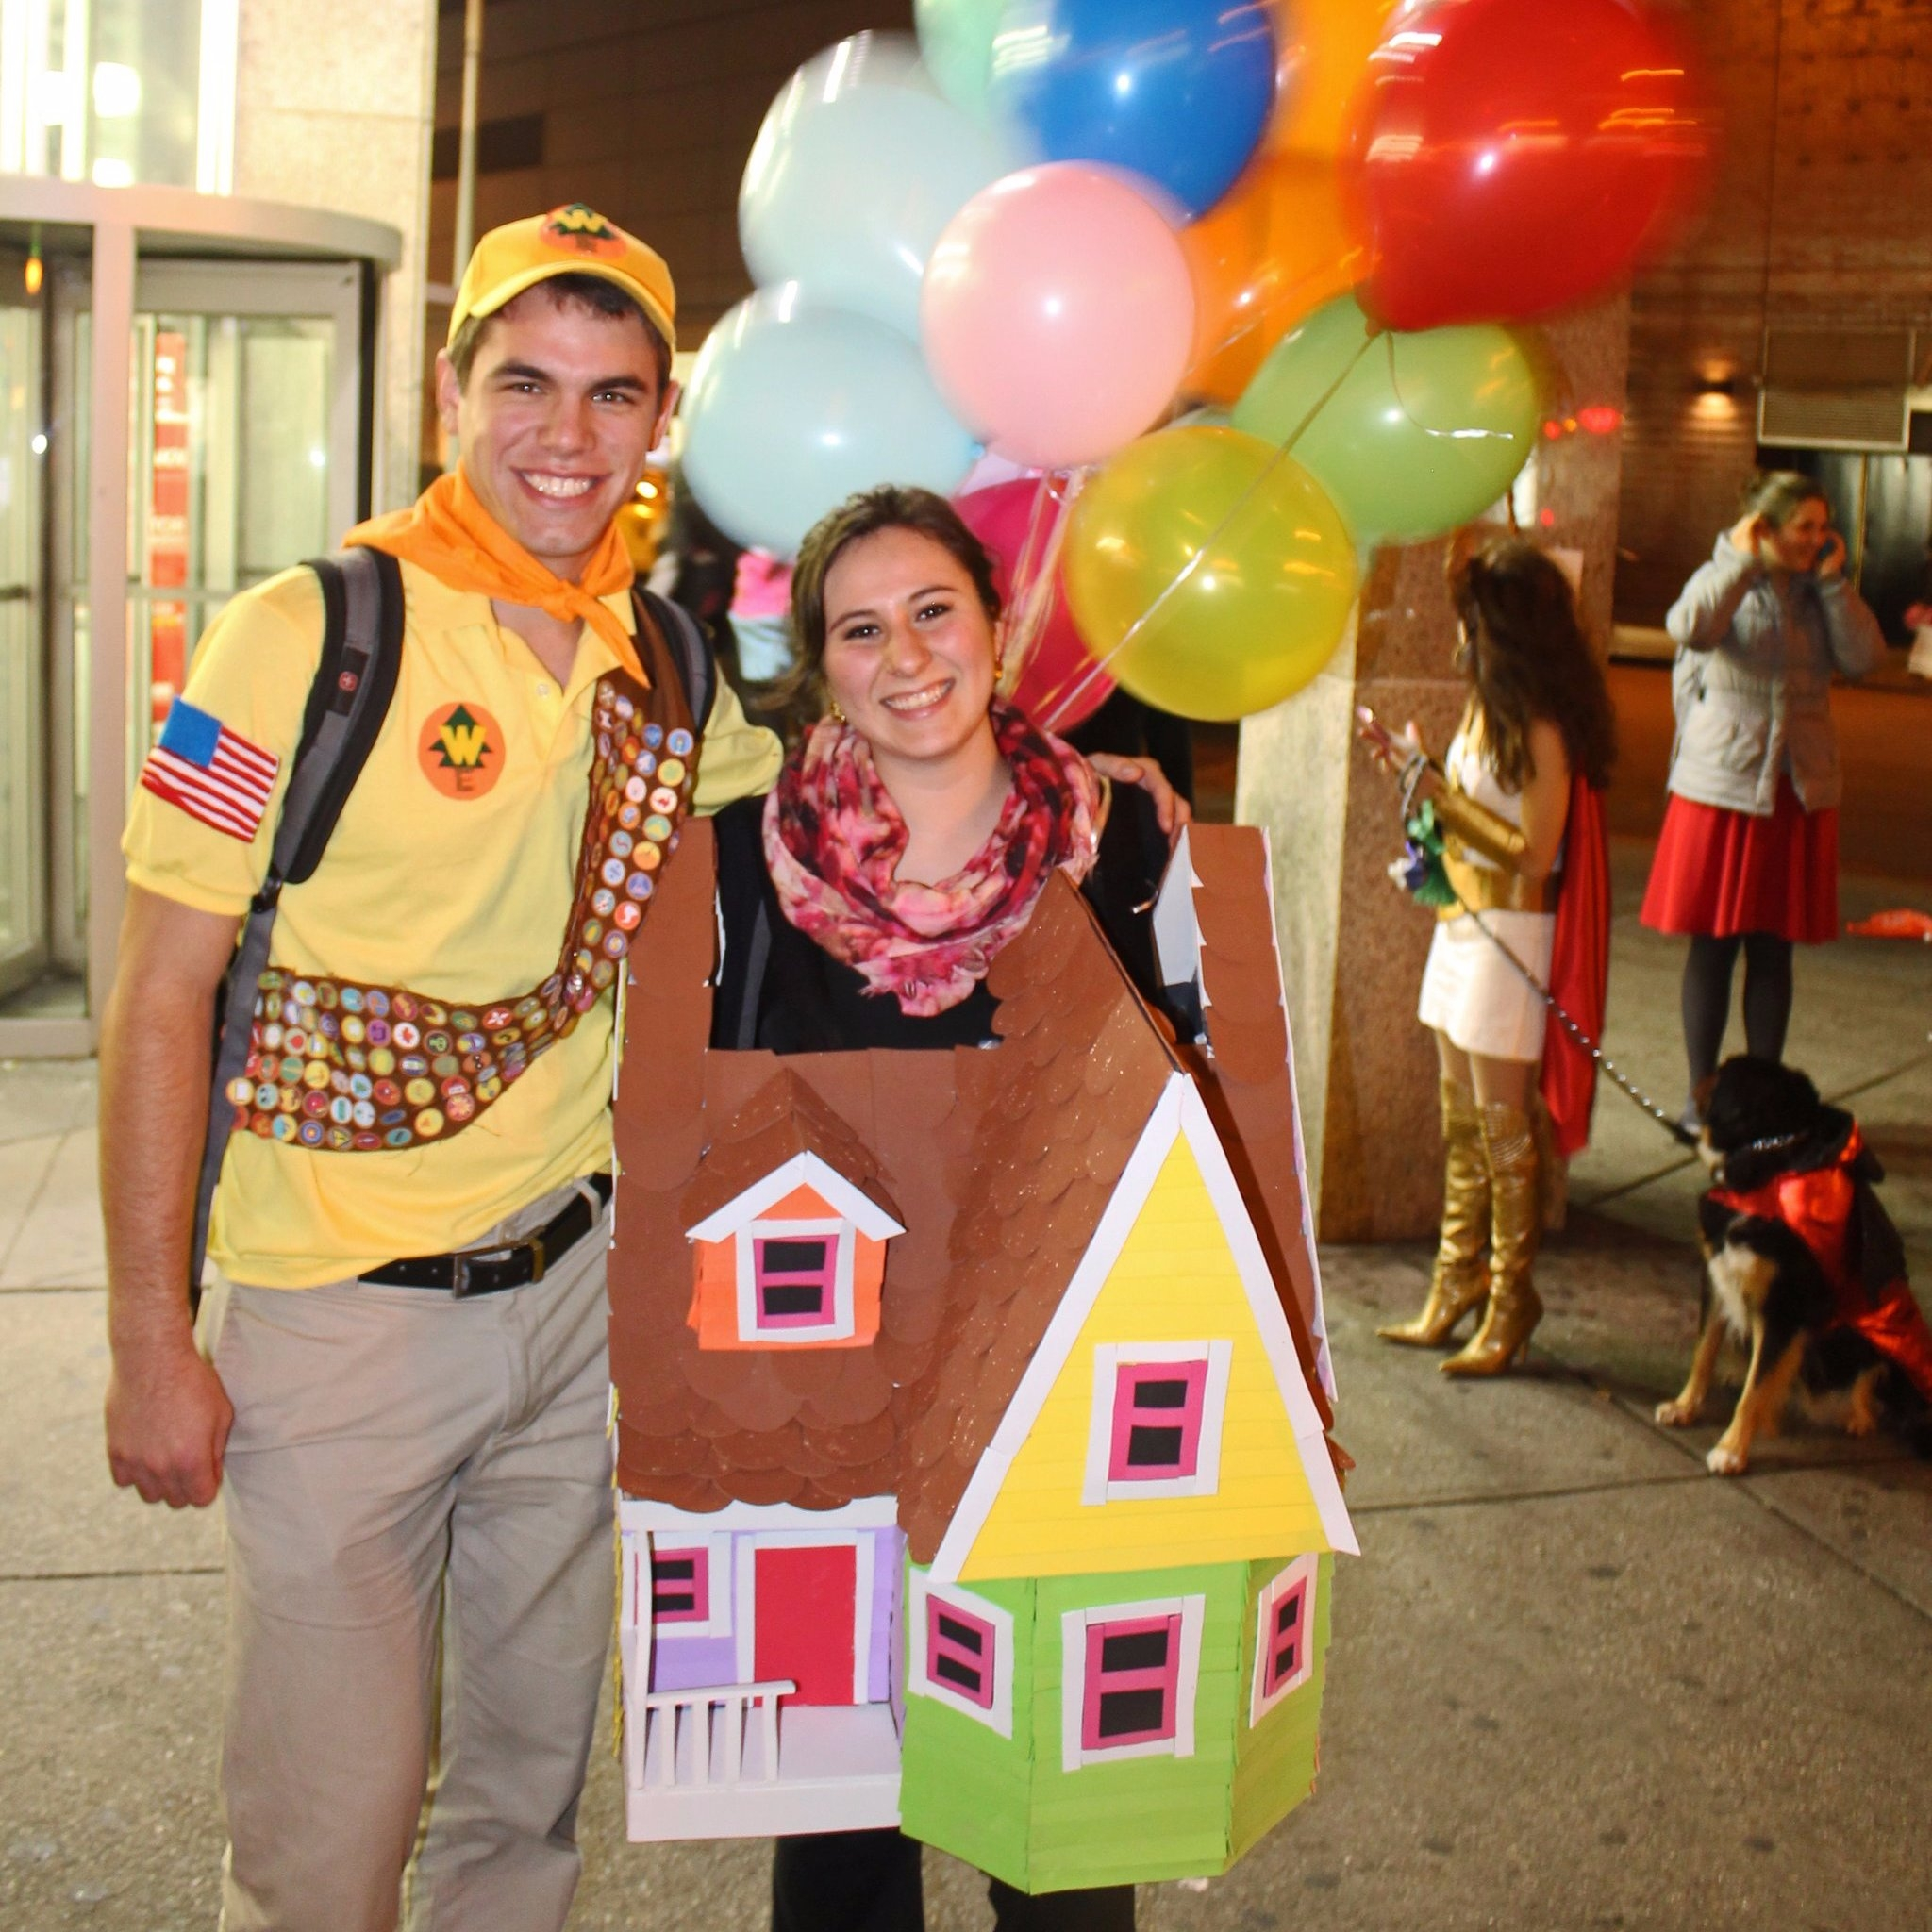 10 Famous Creative Halloween Costume Ideas For Couples cheap diy couples halloween costumes popsugar smart living 9 2020